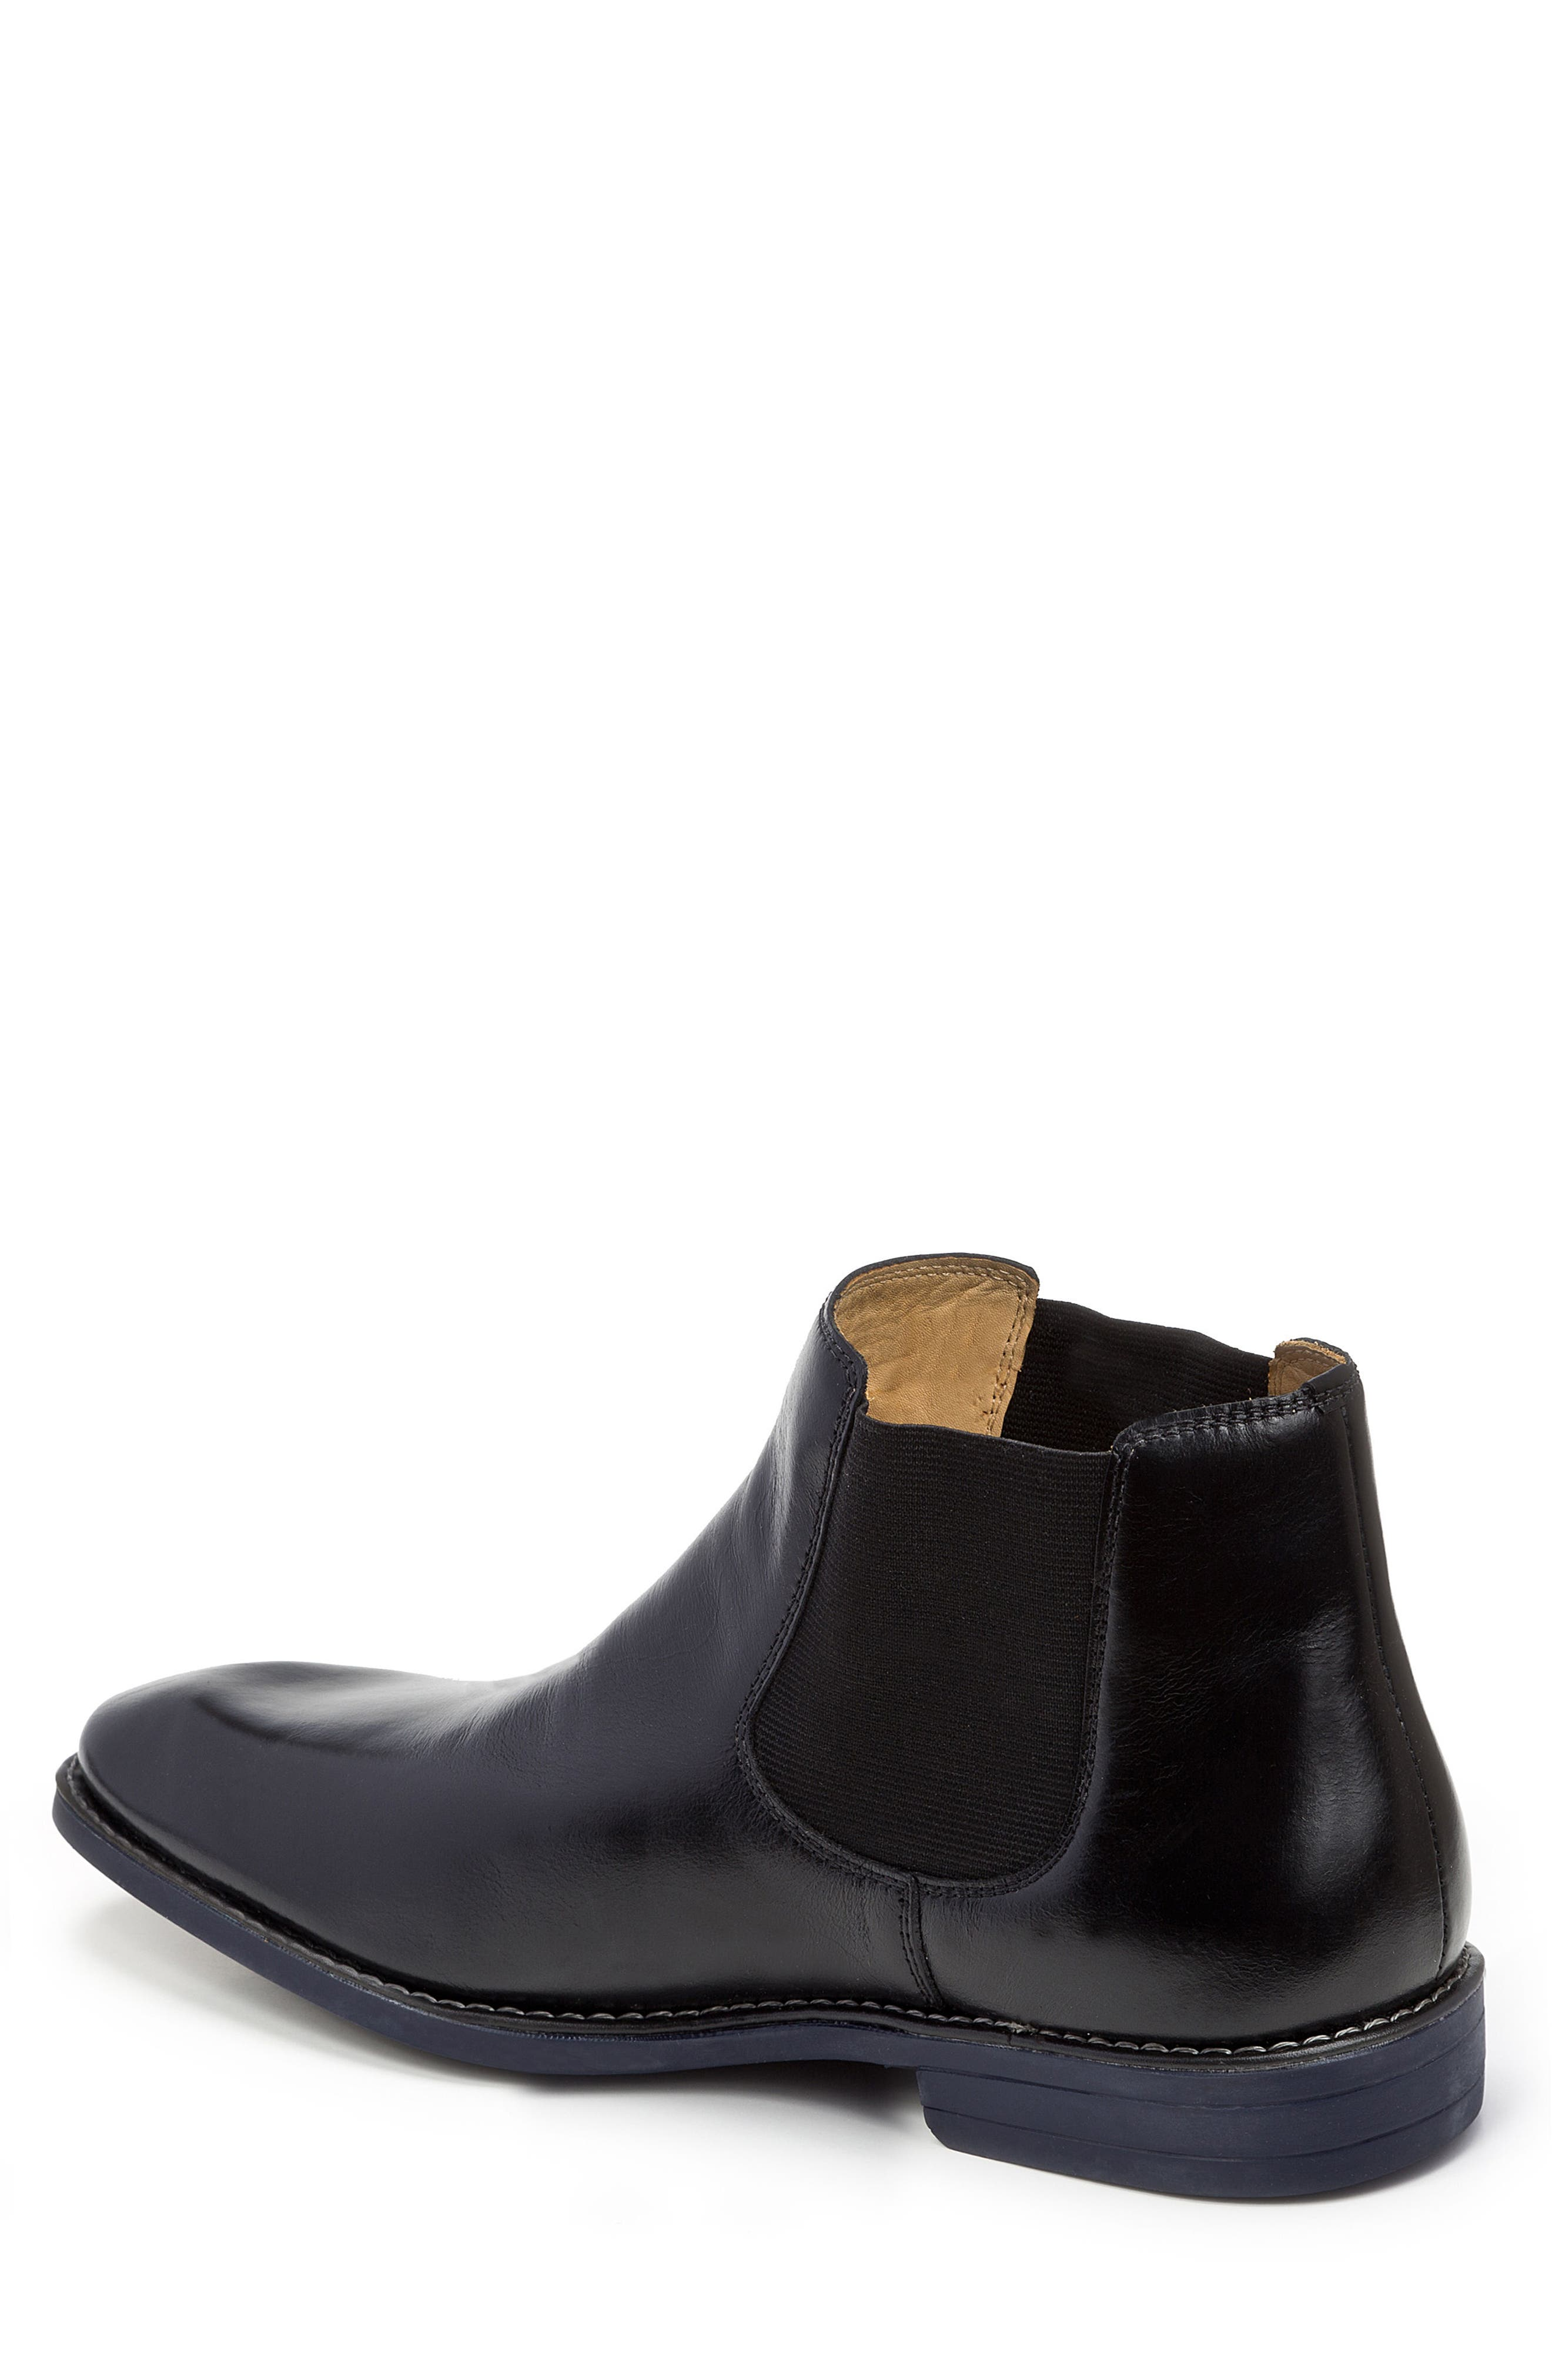 Marcus Chelsea Boot,                             Alternate thumbnail 2, color,                             BLACK LEATHER